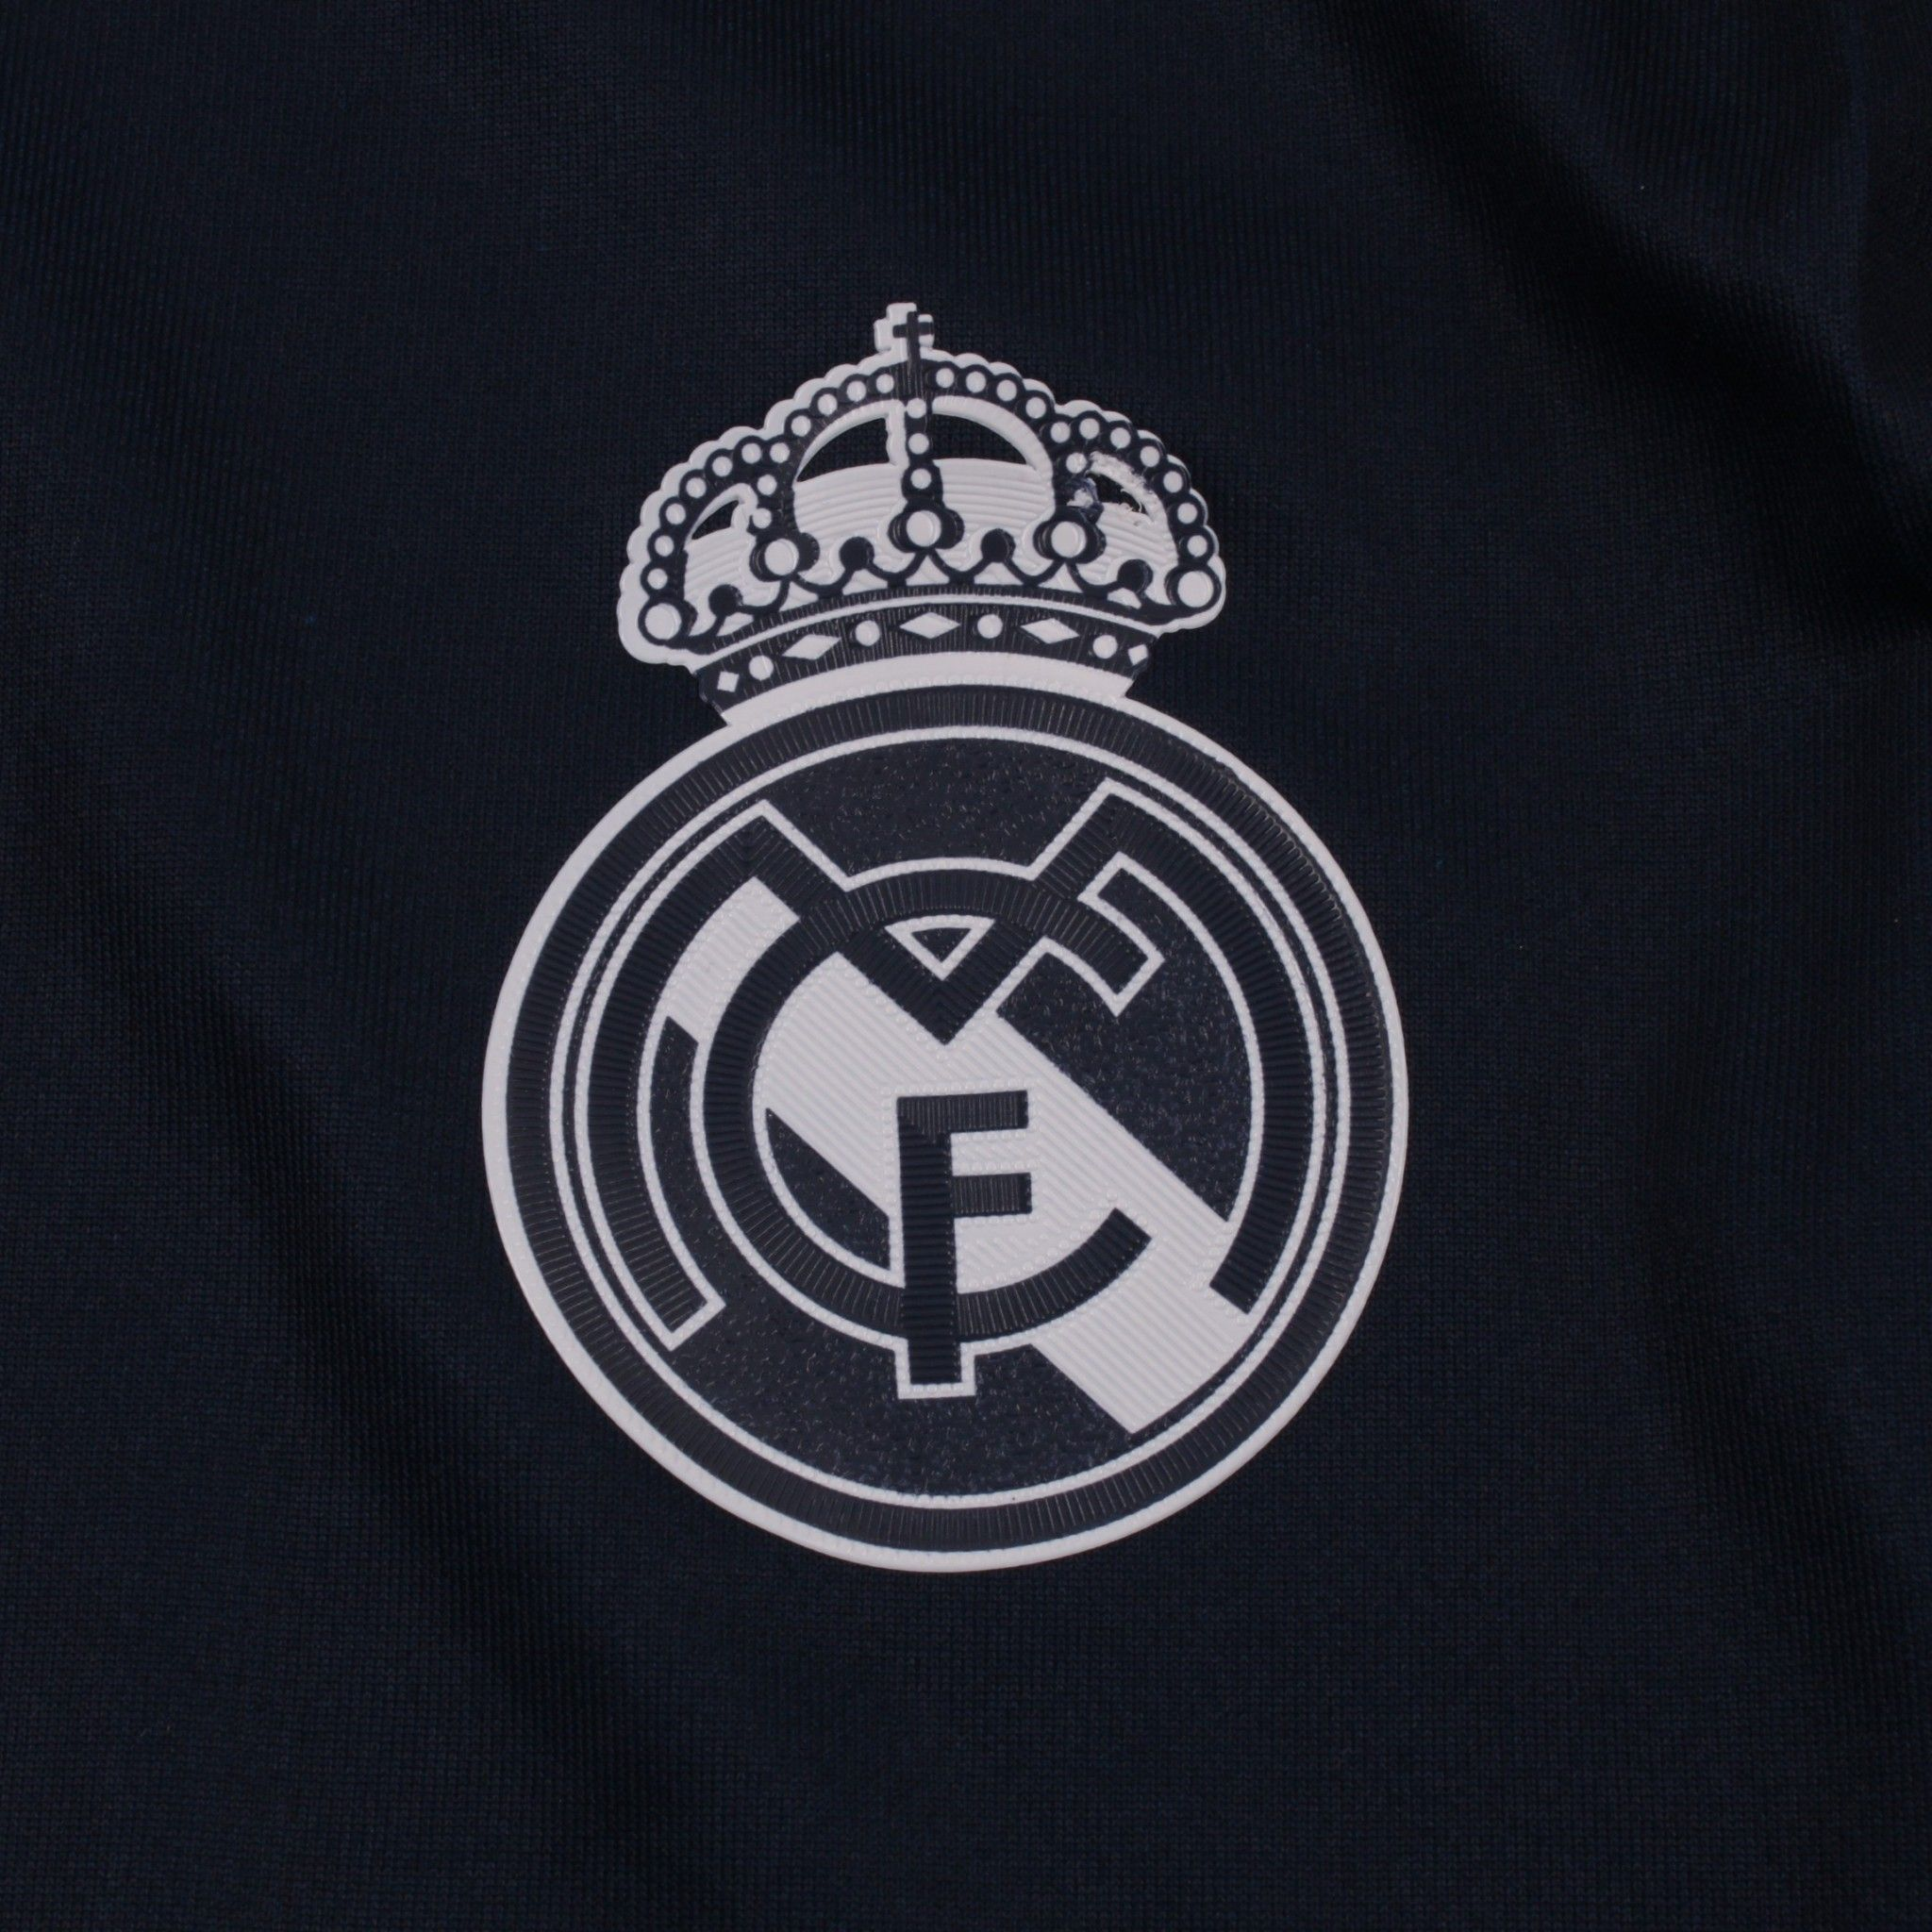 Madrid Logo Tap to see more Real Madrid wallpaper